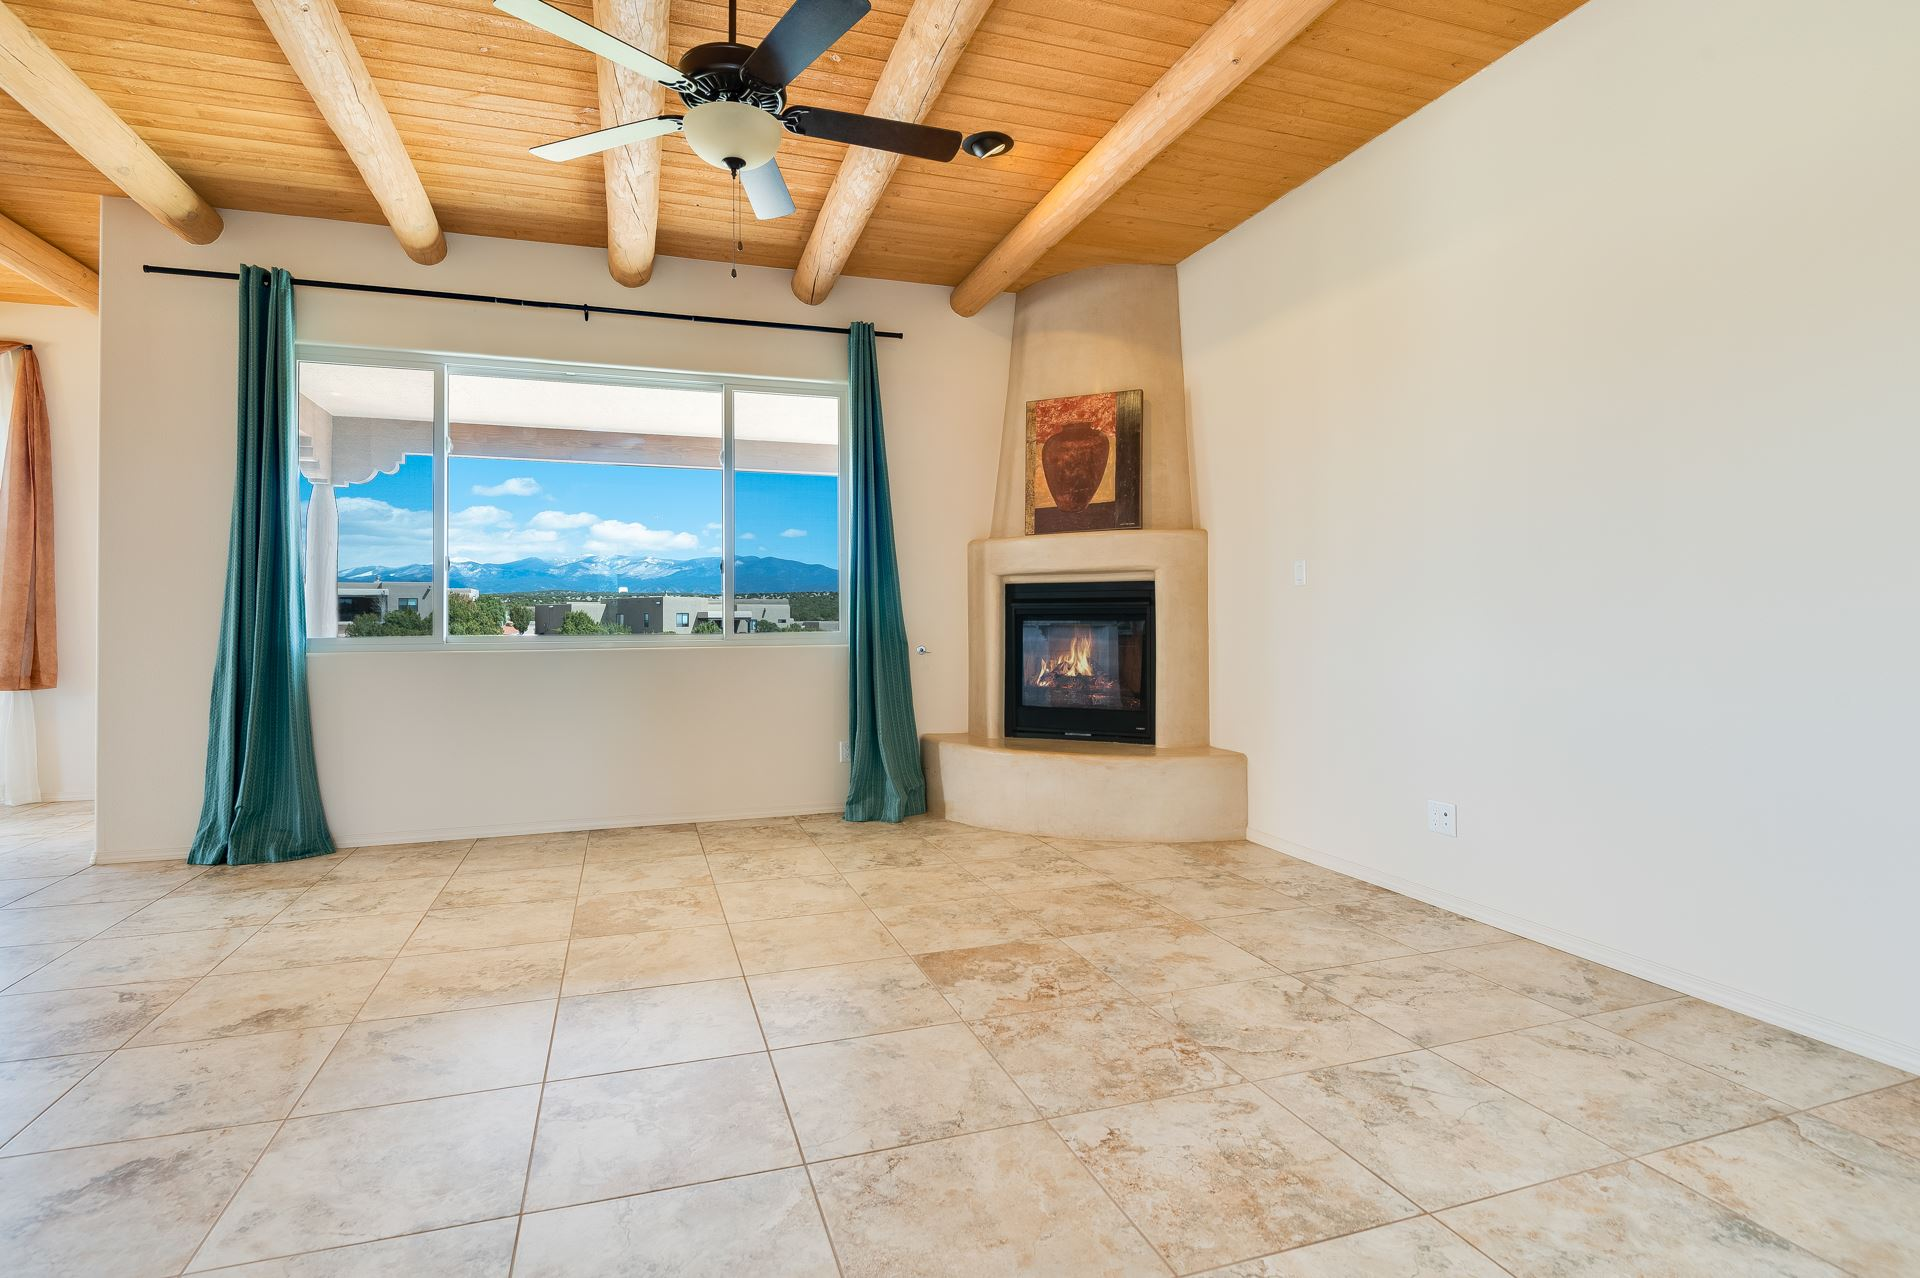 Looking for an affordable view property? This is it---located in the spectacular community of Tessera, this lovely, all single level three bedroom home sits perched on one of the highest lots in the subdivision and features truly staggering Sangres views (photos will never do these justice!). Built in 2015, the property includes vigas and beams, corner fireplace in great room, upgraded countertops and deco tiles throughout, granite and stainless cooks kitchen with full pantry, designer lighting , spacious master with en-suite bath replete with double sinks and spa tub, direct entry two car garage with spacious utility room. Added bonuses?  Full length rear portal and covered deck overlooking rolling terrain and stunning eastern vistas, three mini-splits for controlled indoor cooling, efficient drought tolerant landscaping, and low HOA fees.  Mere minutes to the 599 interchange and a wide range of services, Tessera boasts six miles of interior walking trails and the La Tierra trail system is just a mile away.